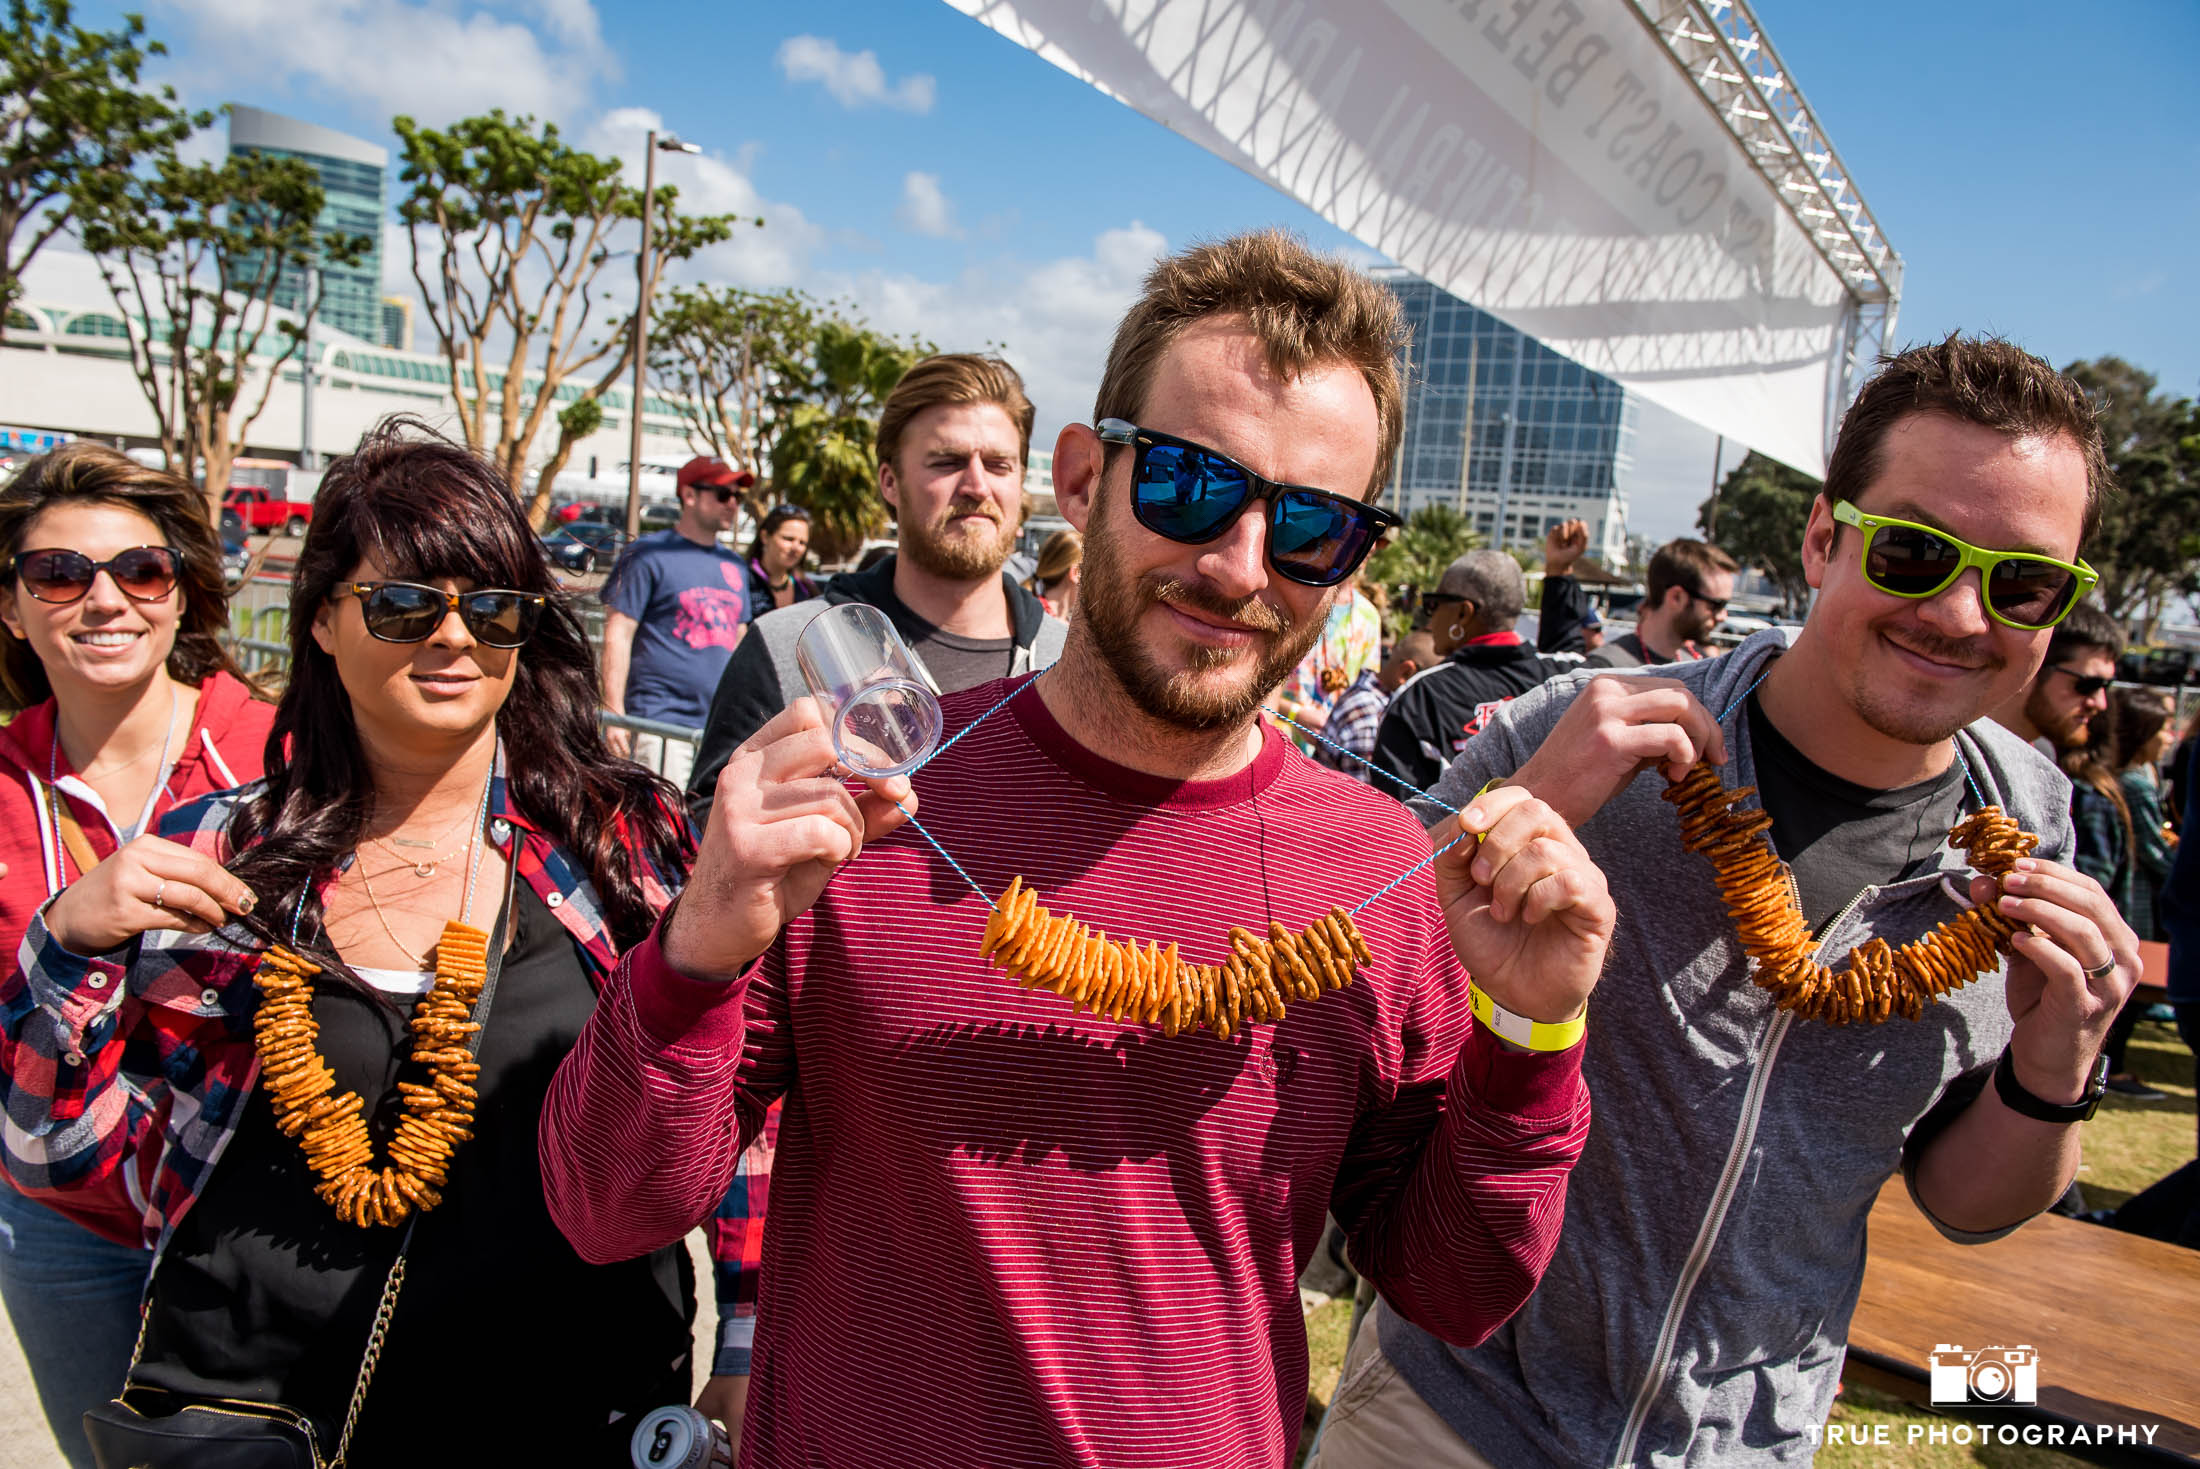 Eventgoers show off their Pretzel Necklaces at Beer Festival in Downtown San Diego